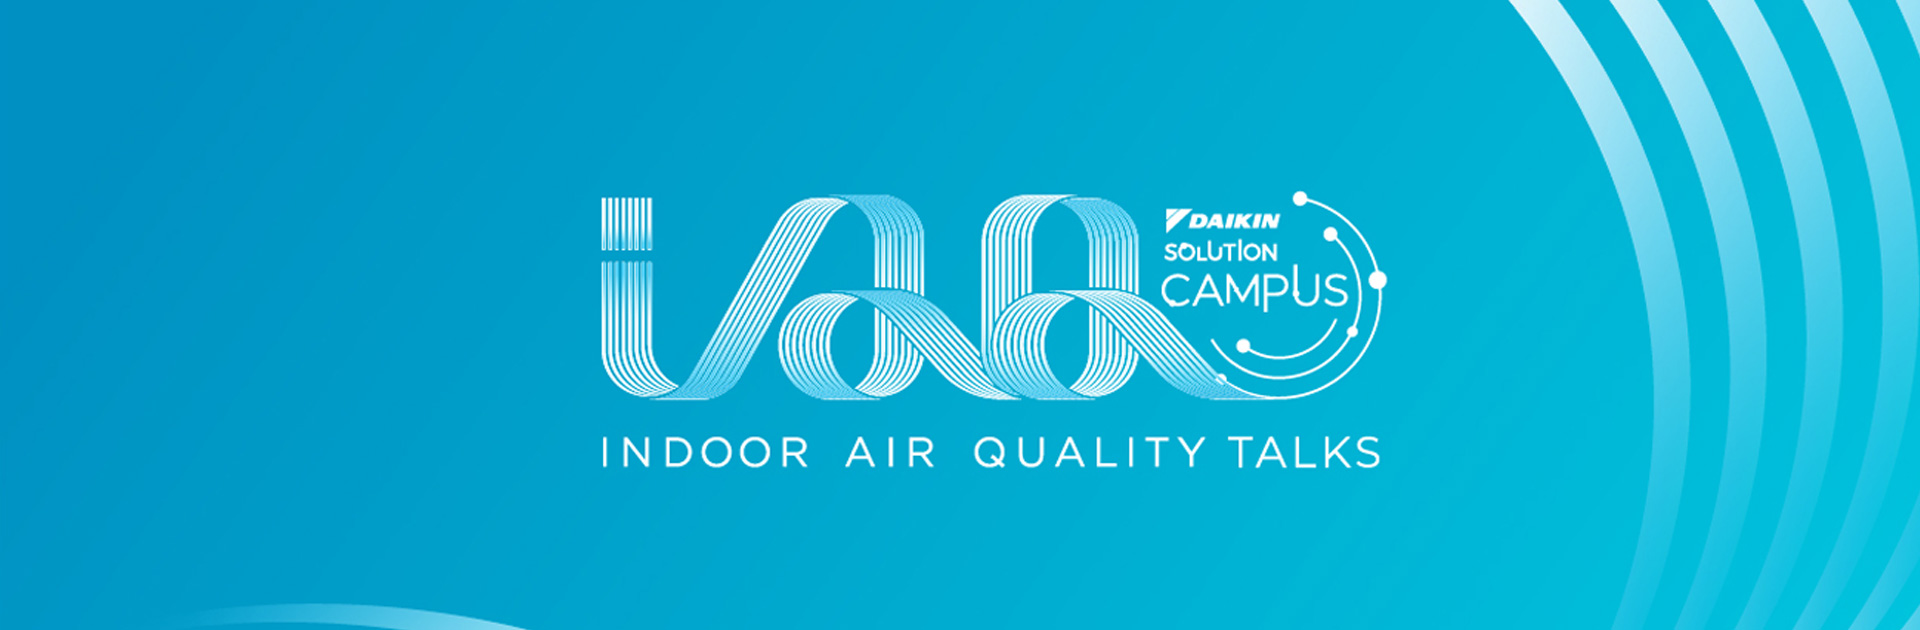 Indoor Air Quality Talks – Daikin Solution Campus